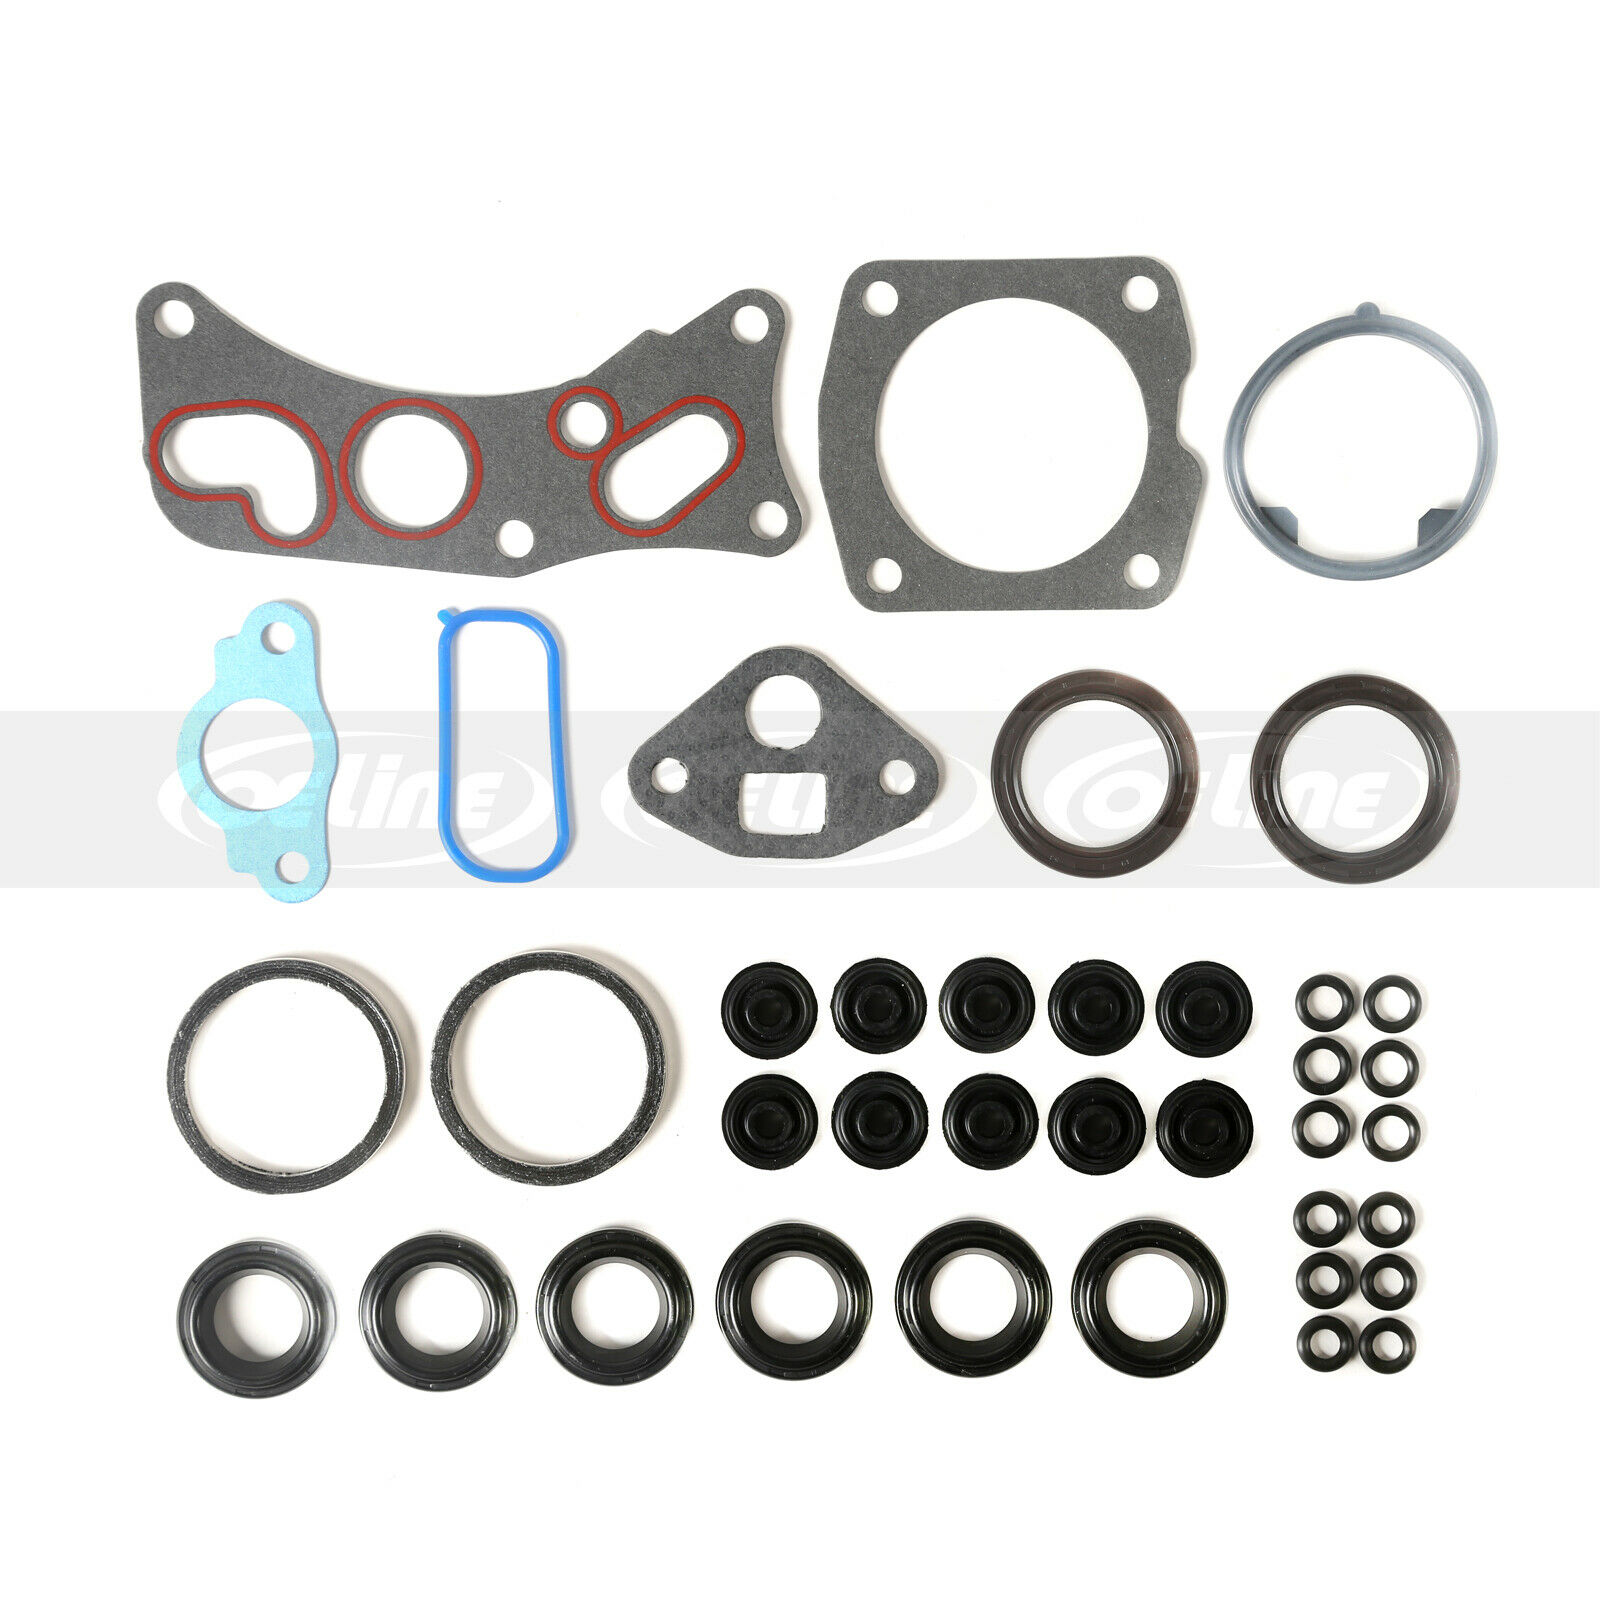 Head Gasket Set For 05-08 Acura RL TL 3.5L SOHC V6 J35A8